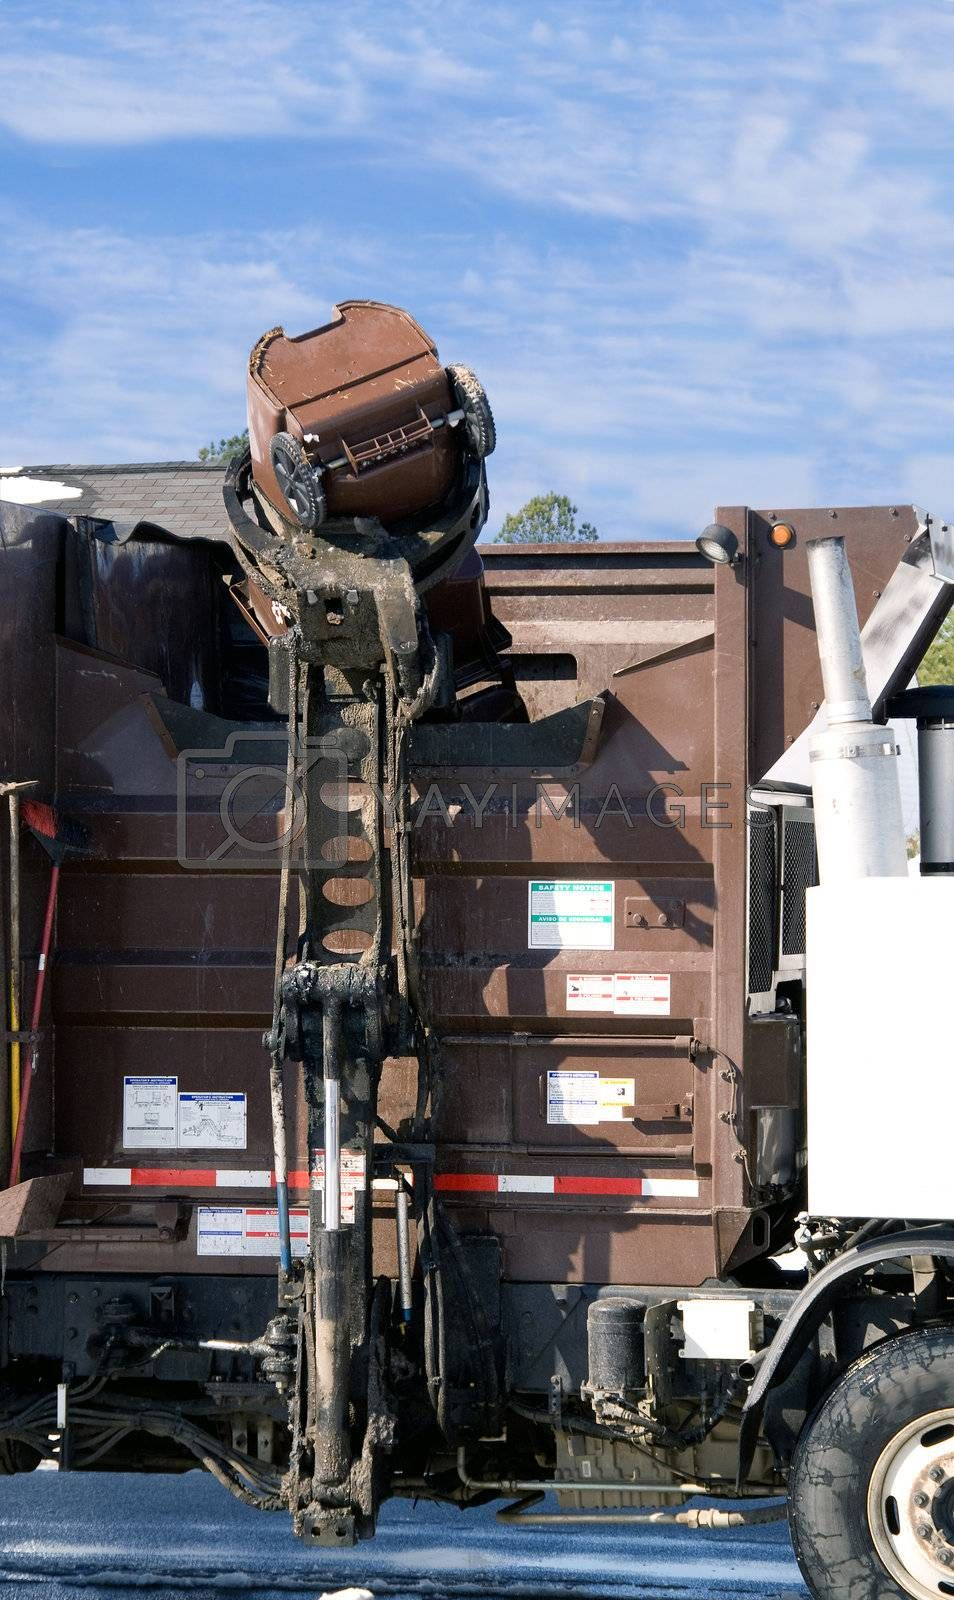 A truck emptying garbage cans.